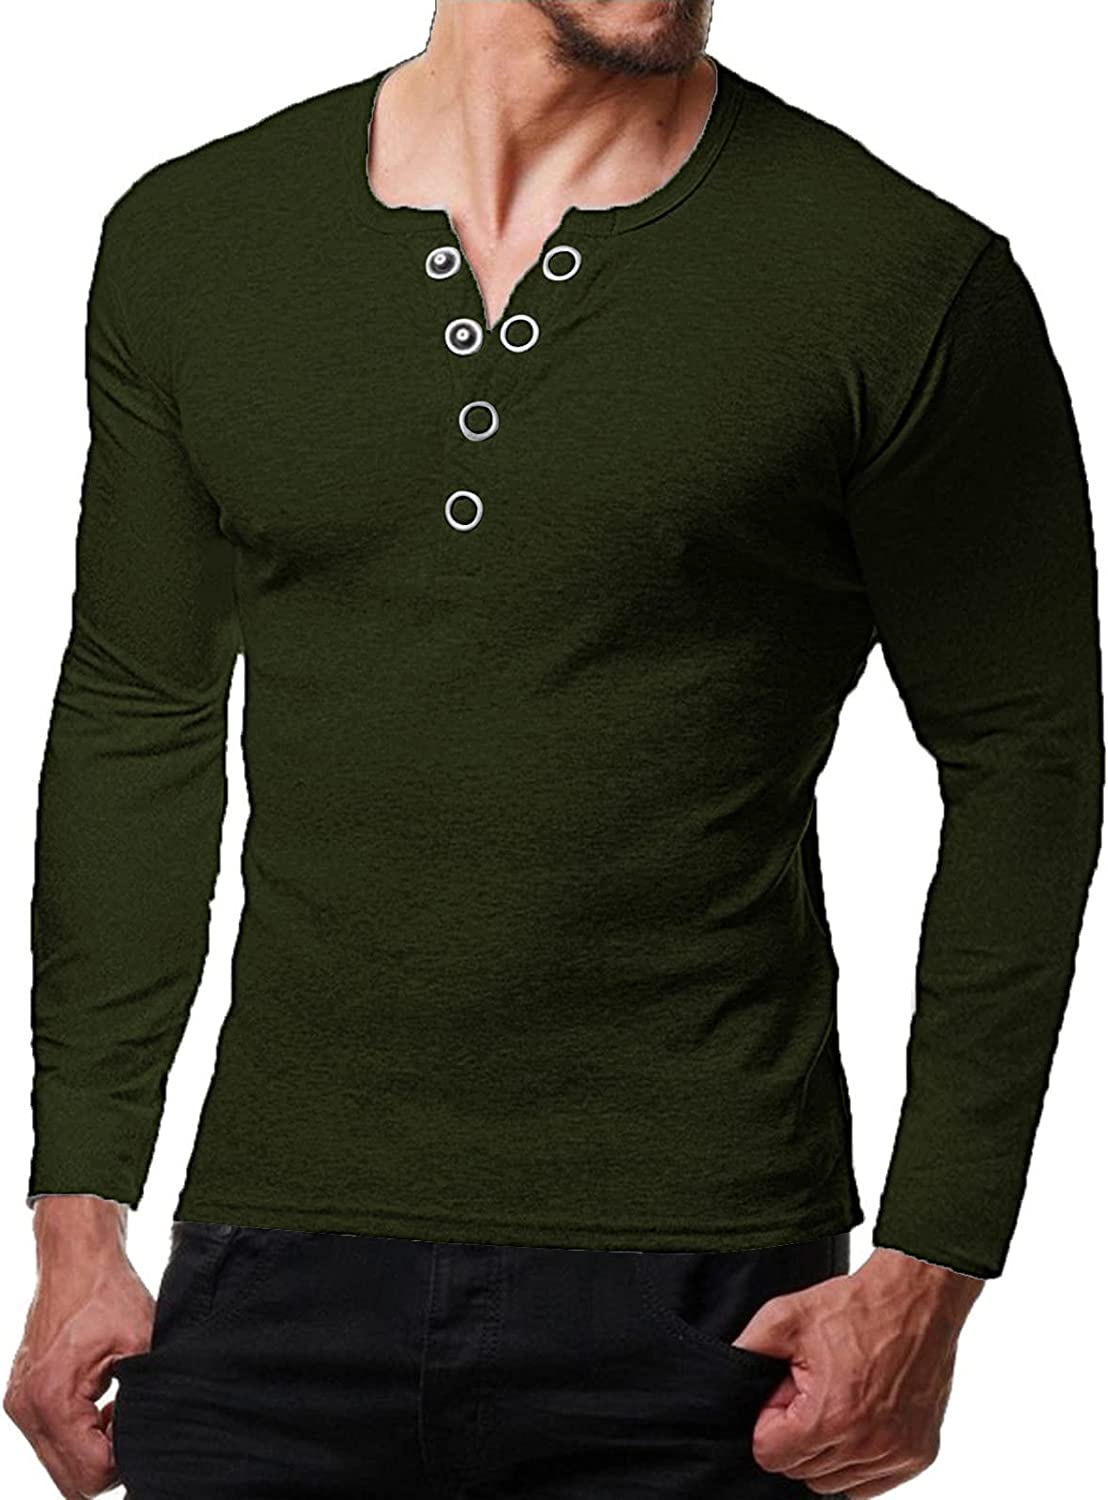 Aayomet Men's T Shirts Casual Long Sleeve Button V Neck Henley Shirts Slim Fit Daily Yoga Sport Beach Tee Shirts Tops